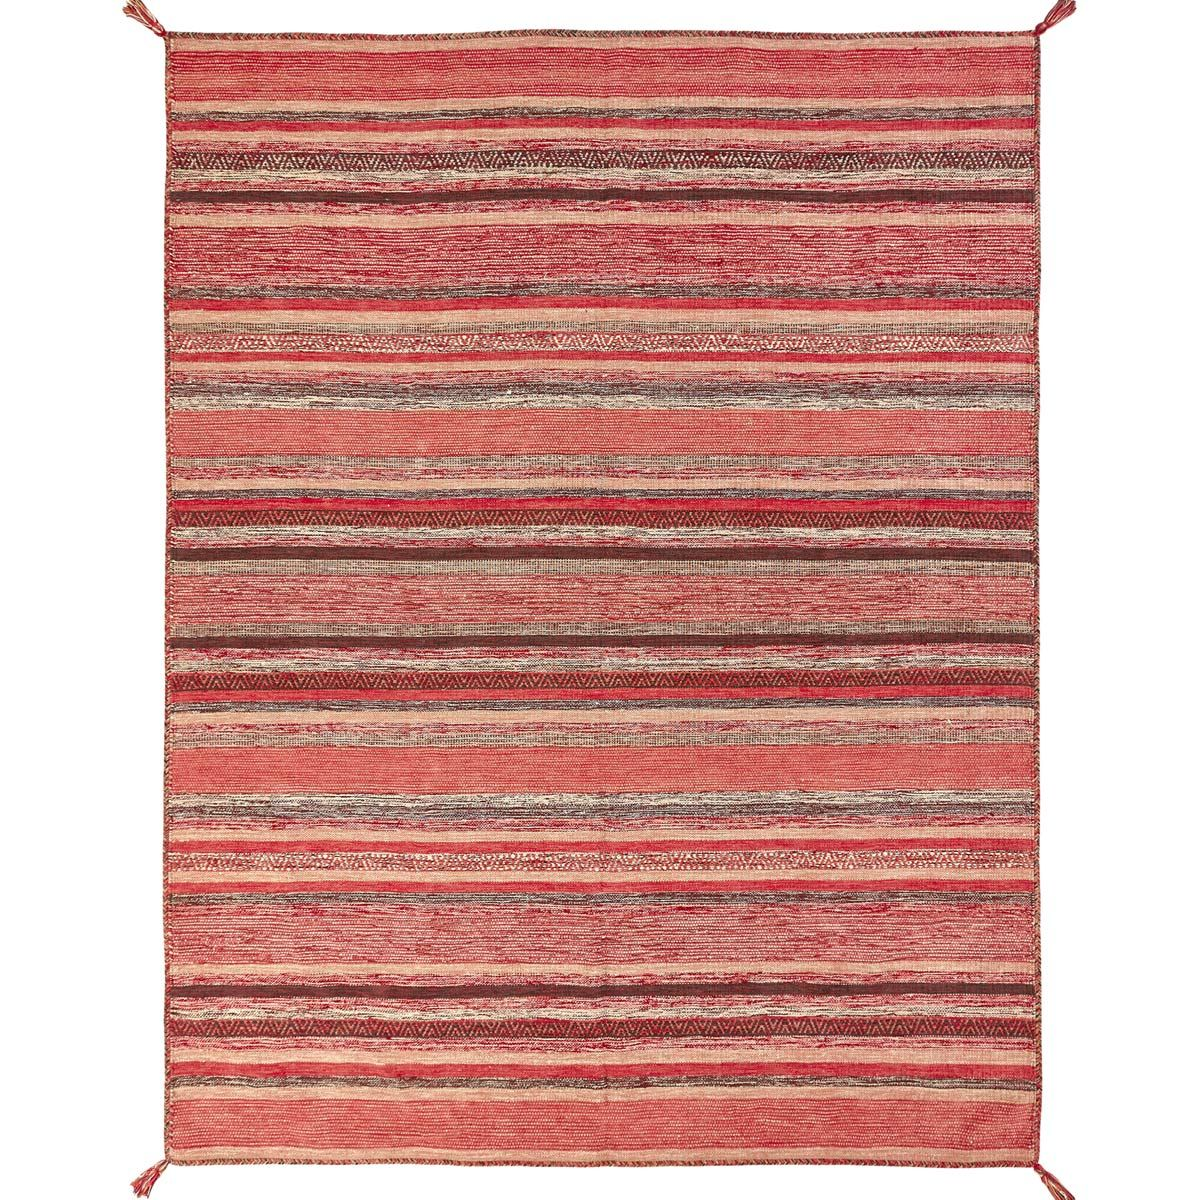 Portales Stripes Rug - 8 x 10